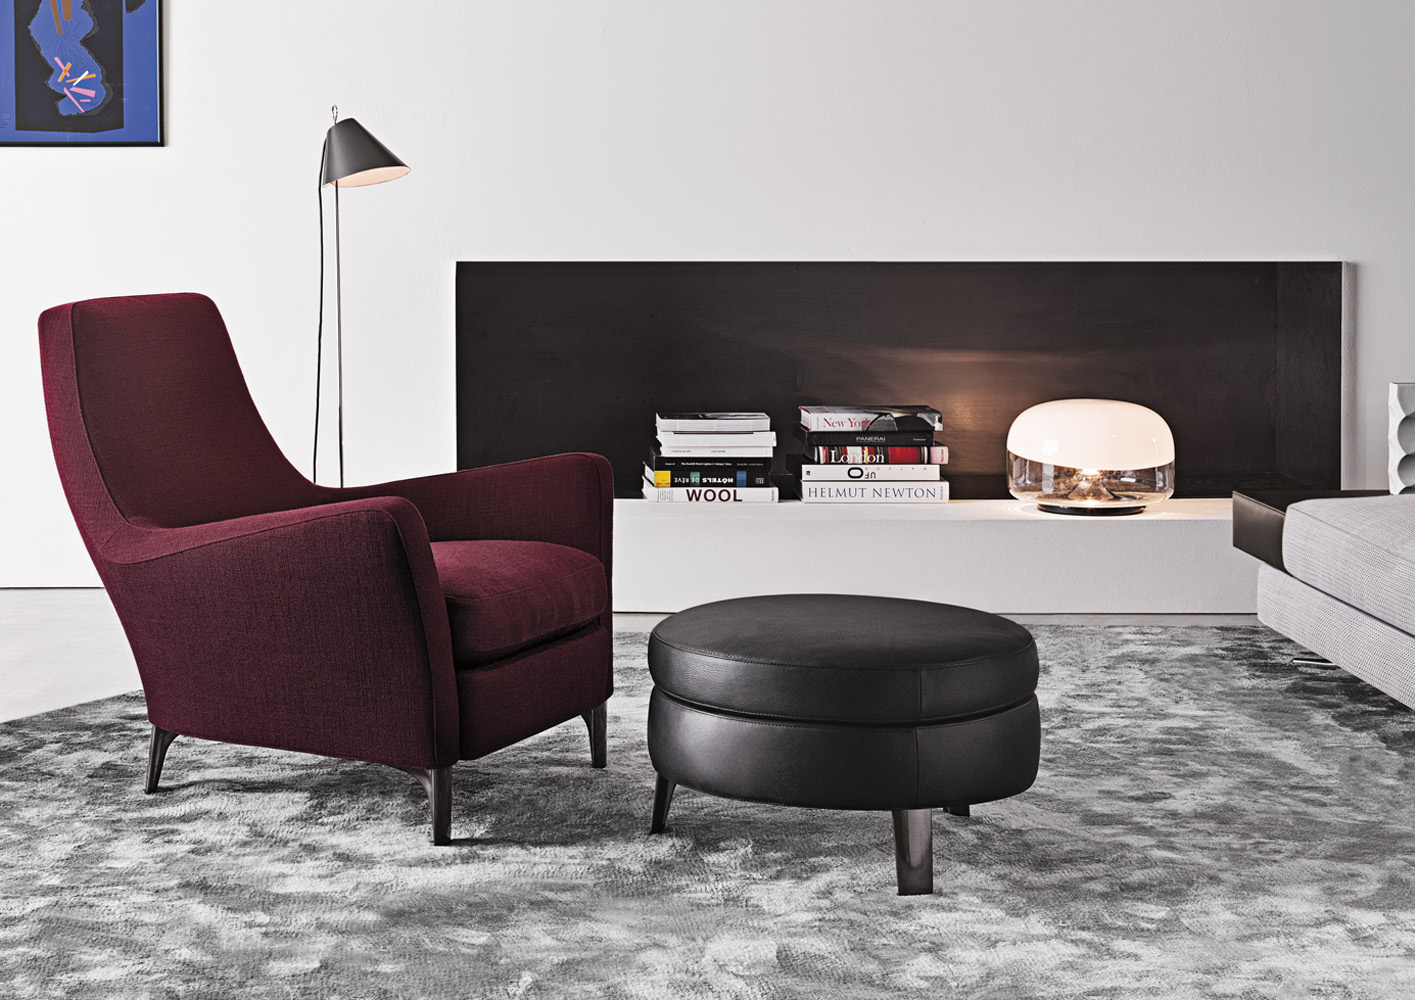 denny poltrona di minotti poltrone chaise longue arredamento mollura home design. Black Bedroom Furniture Sets. Home Design Ideas